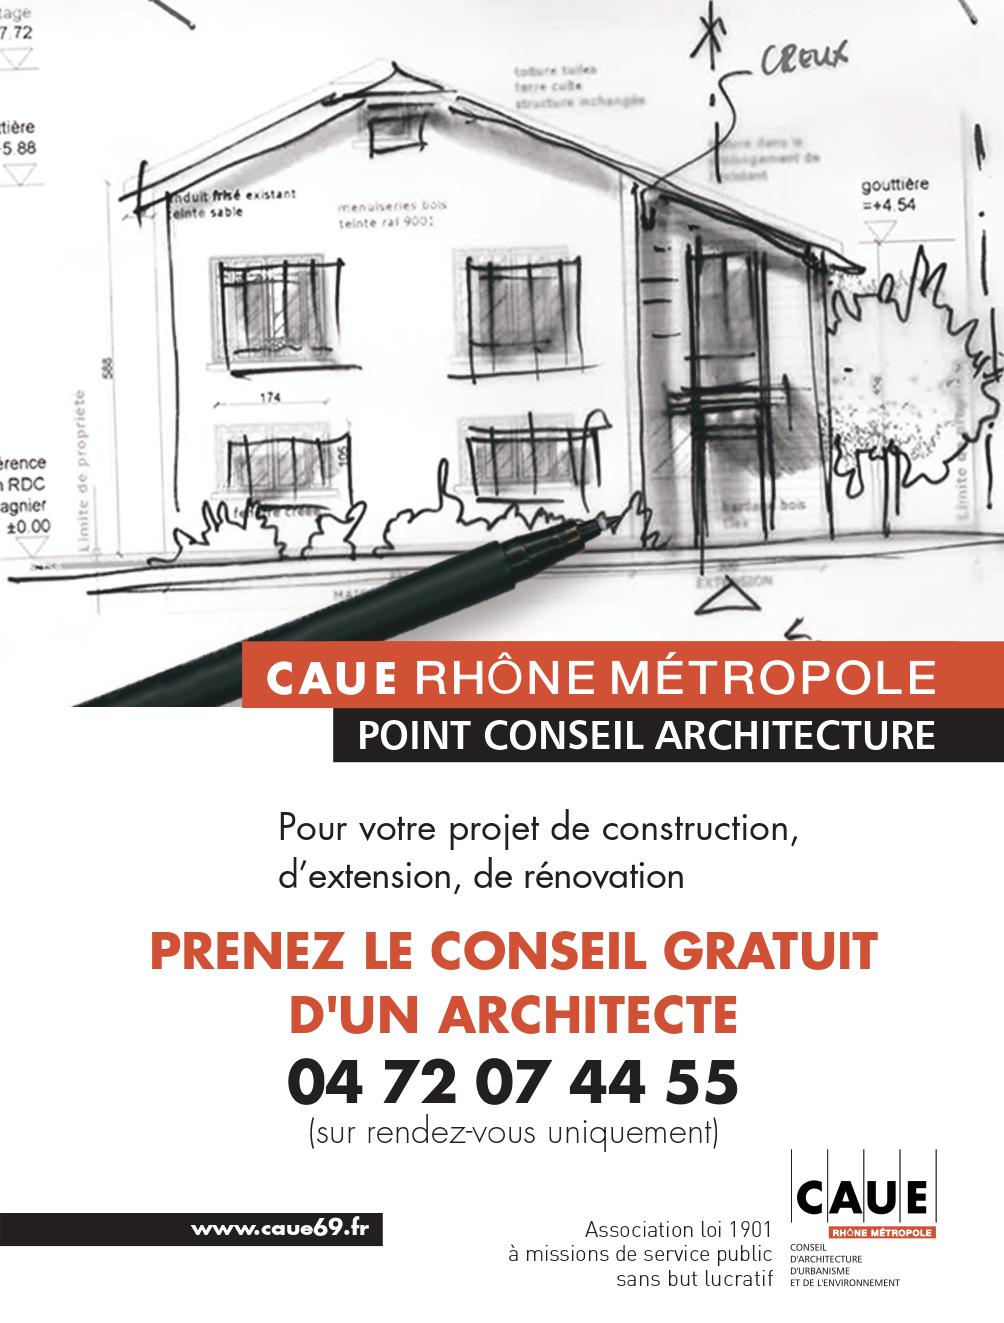 Point conseil architecture oikos coconstruction oikos for Conseil architecte gratuit